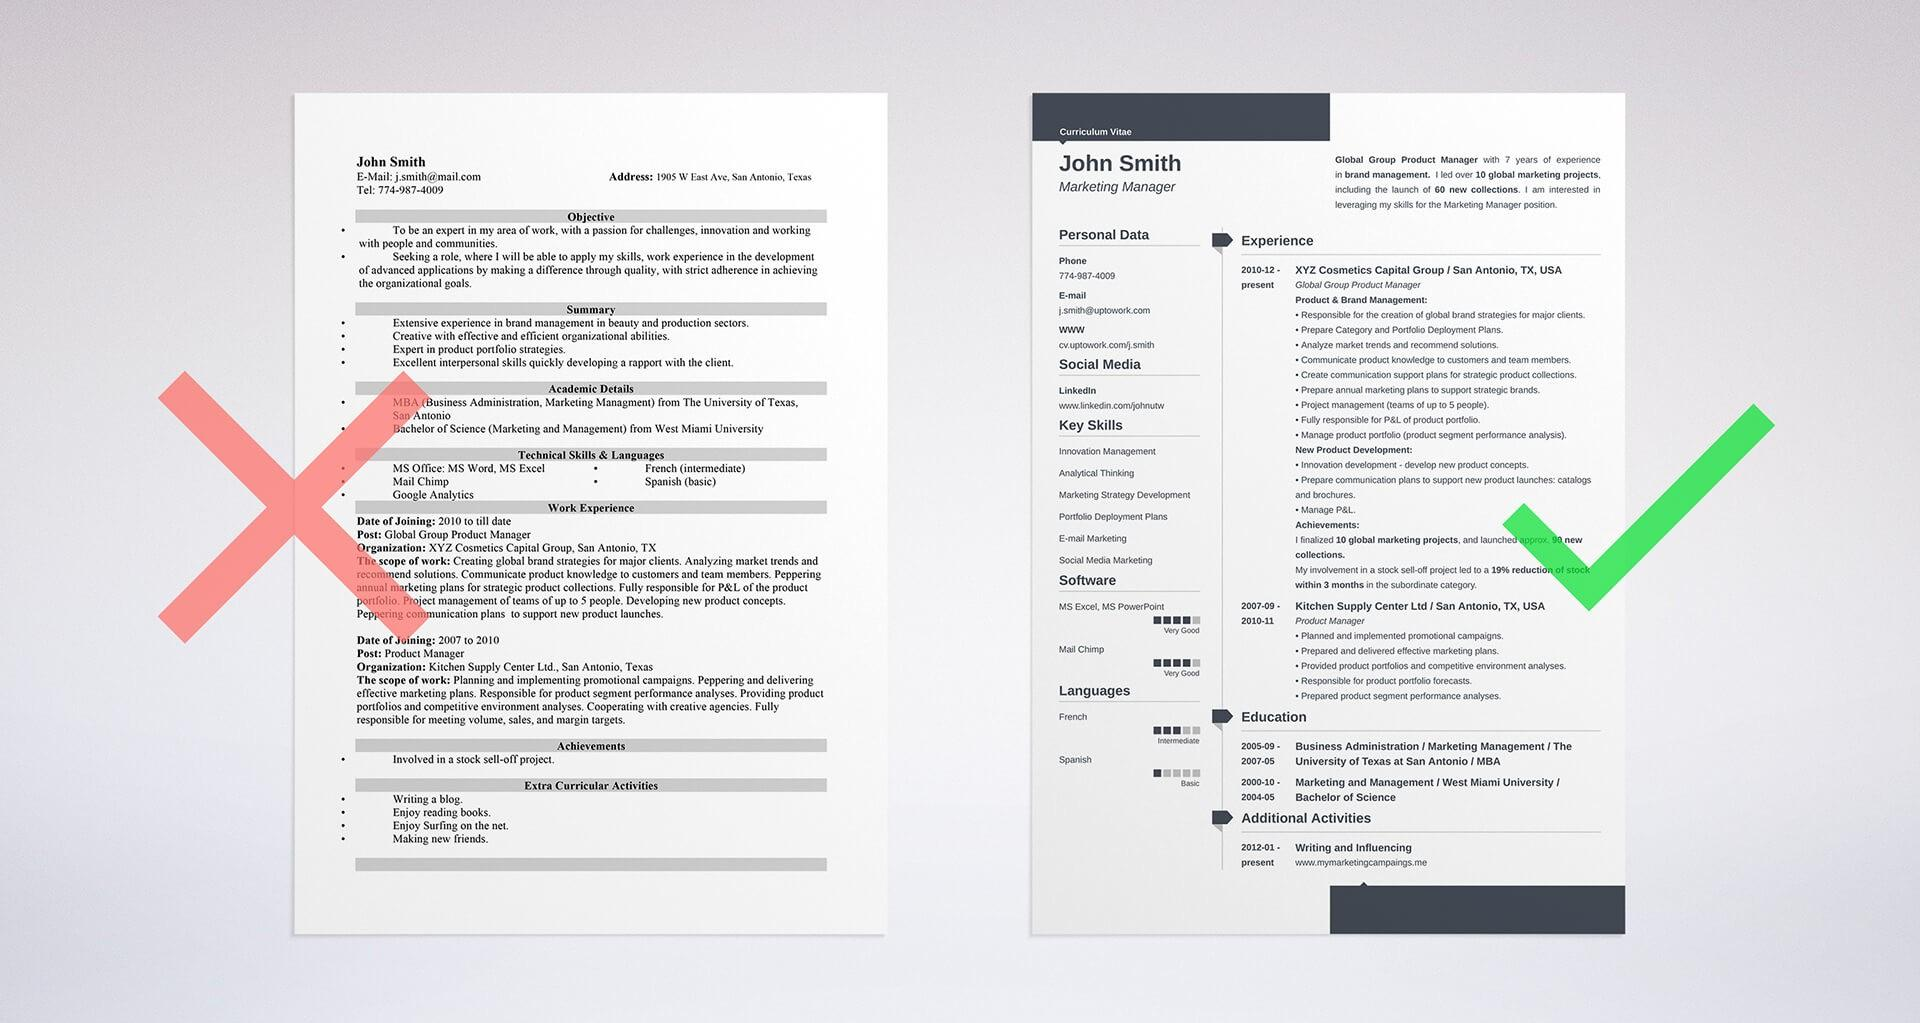 Sample Resume Objectives jmckell.Com